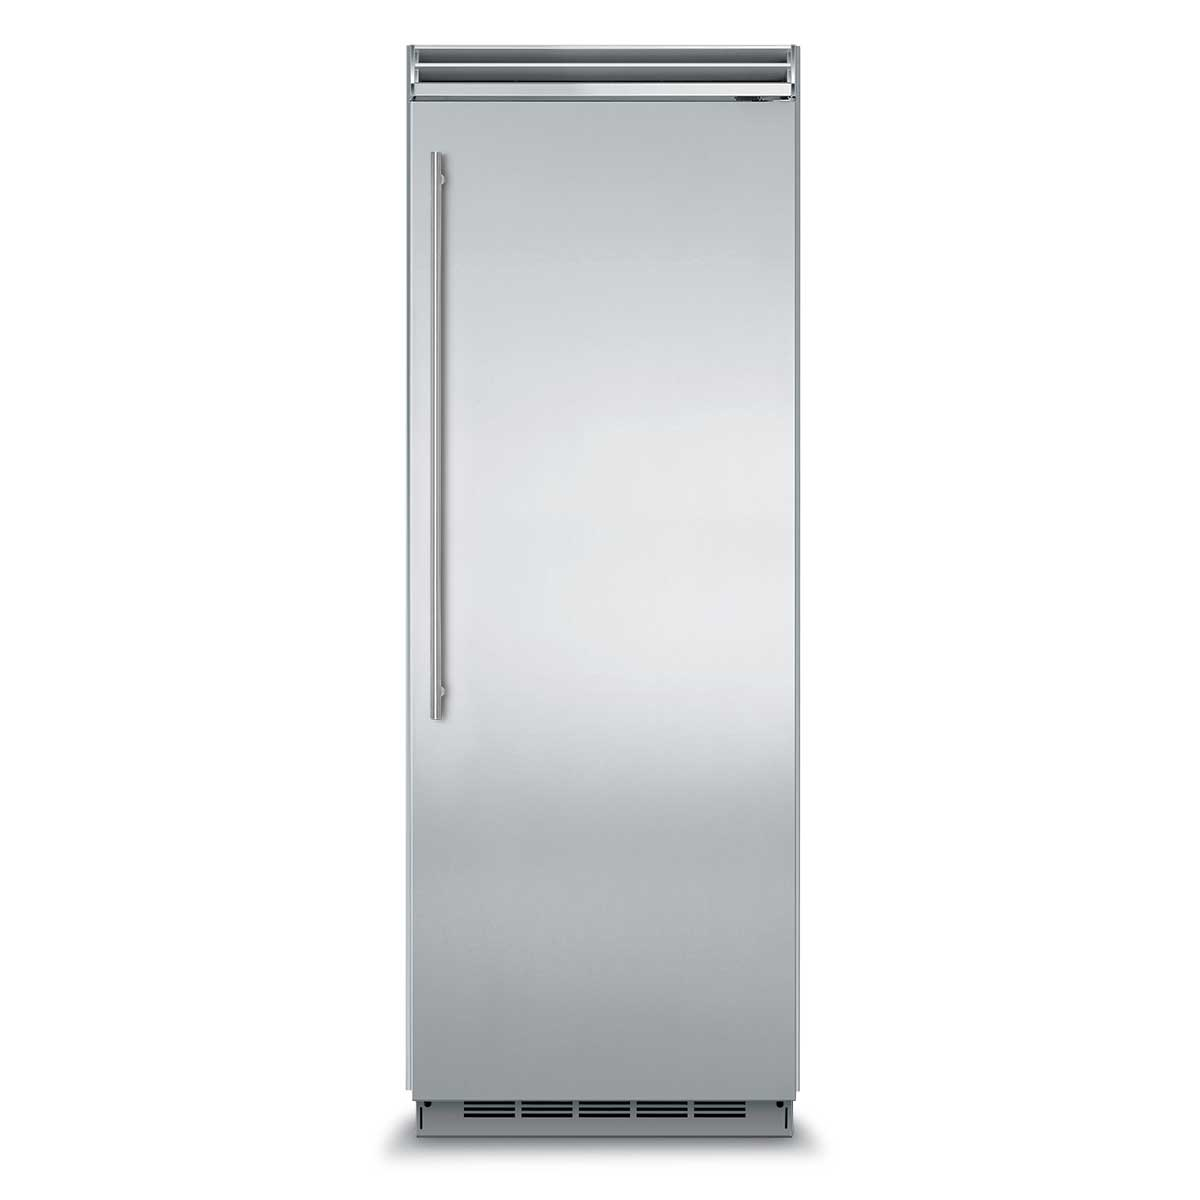 "Model: 42249740 | Marvel  Marvel Professional Built-In 30"" All Freezer-Optional Accessories Professional Handle ? Vertical Door Installation (qty 1)"